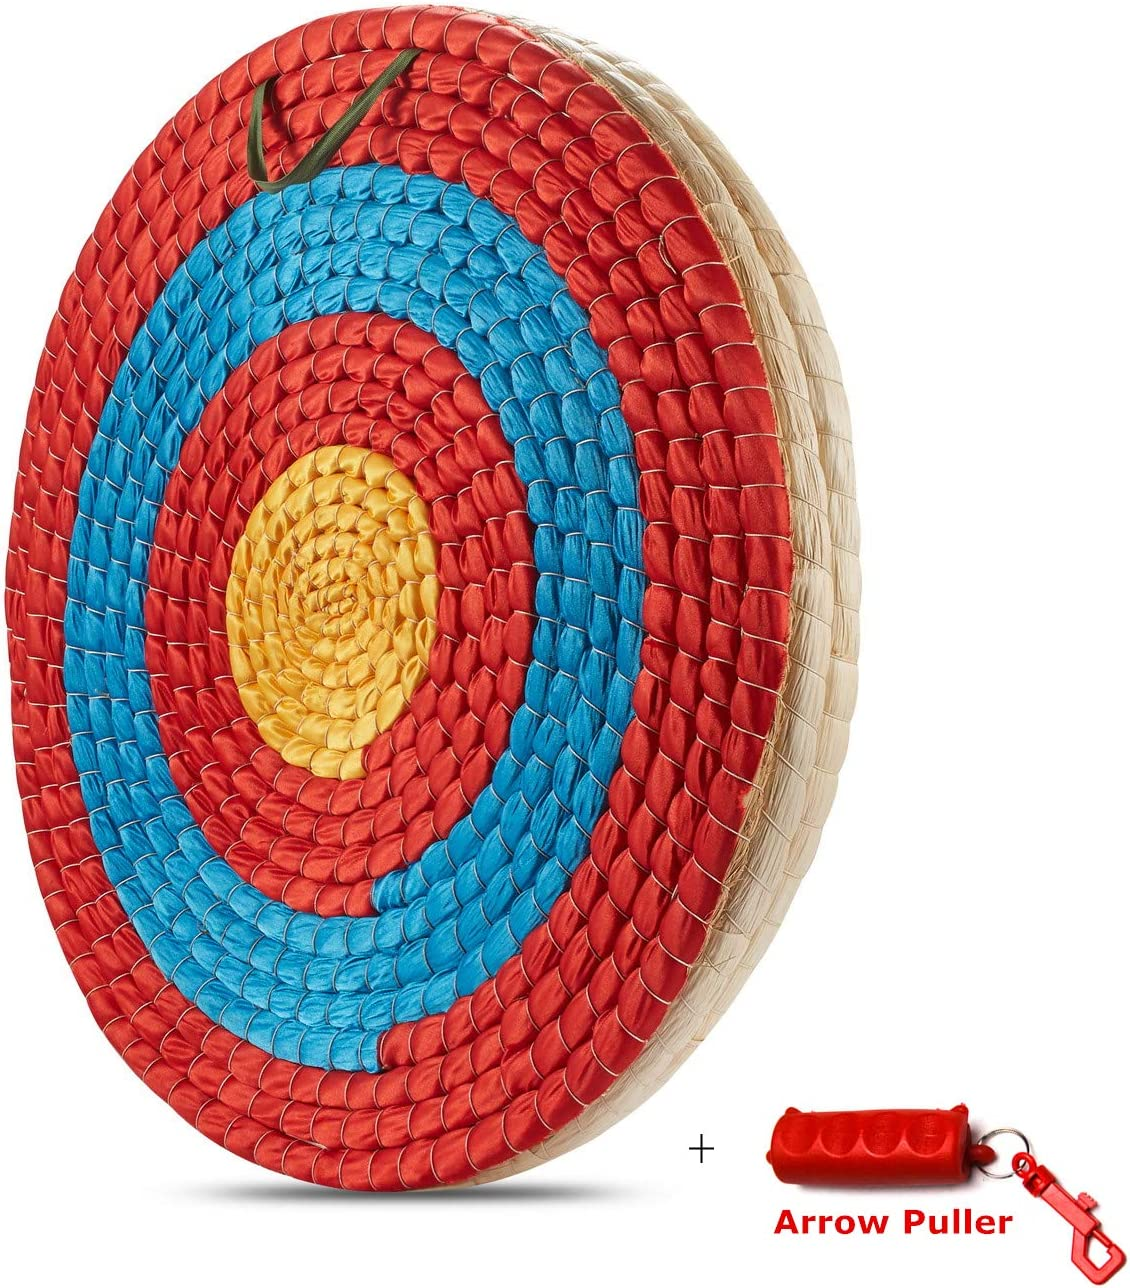 KAINOKAI Traditional Hand-Made Archery Target with Arrow Puller,Arrows Target for Recurve Bow Longbow or Compound Bow